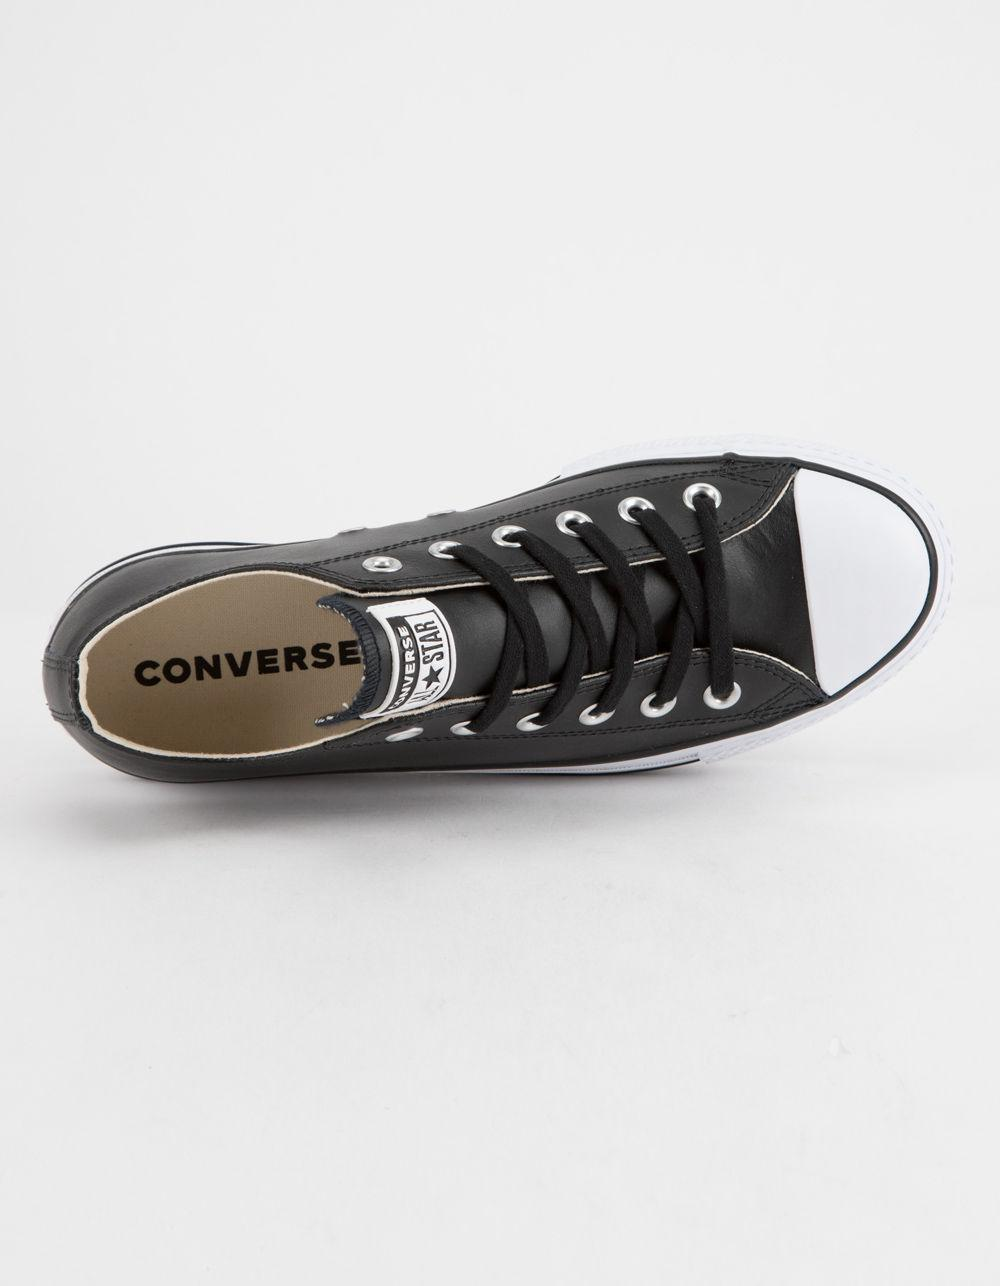 Converse Chuck Taylor All Star Lift Faux Leather Womens Low Top Shoes Black Converse Sneakers from Lyst | myweddingShop